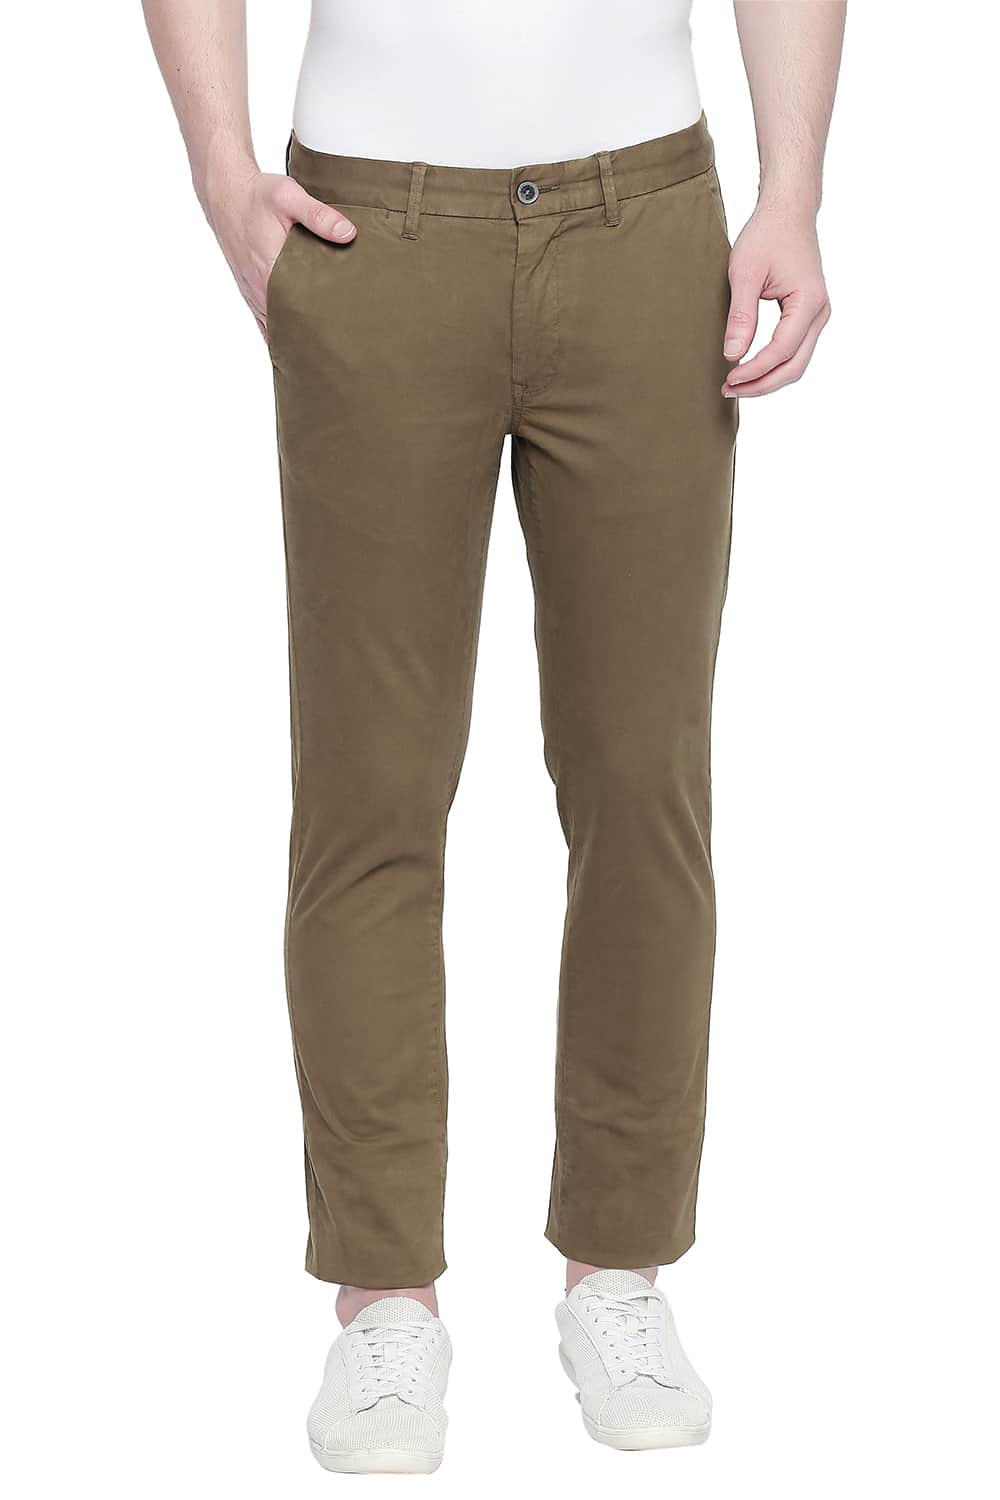 Basics | Basics Tapered Fit Bronze Brown Over Dyed Trouser